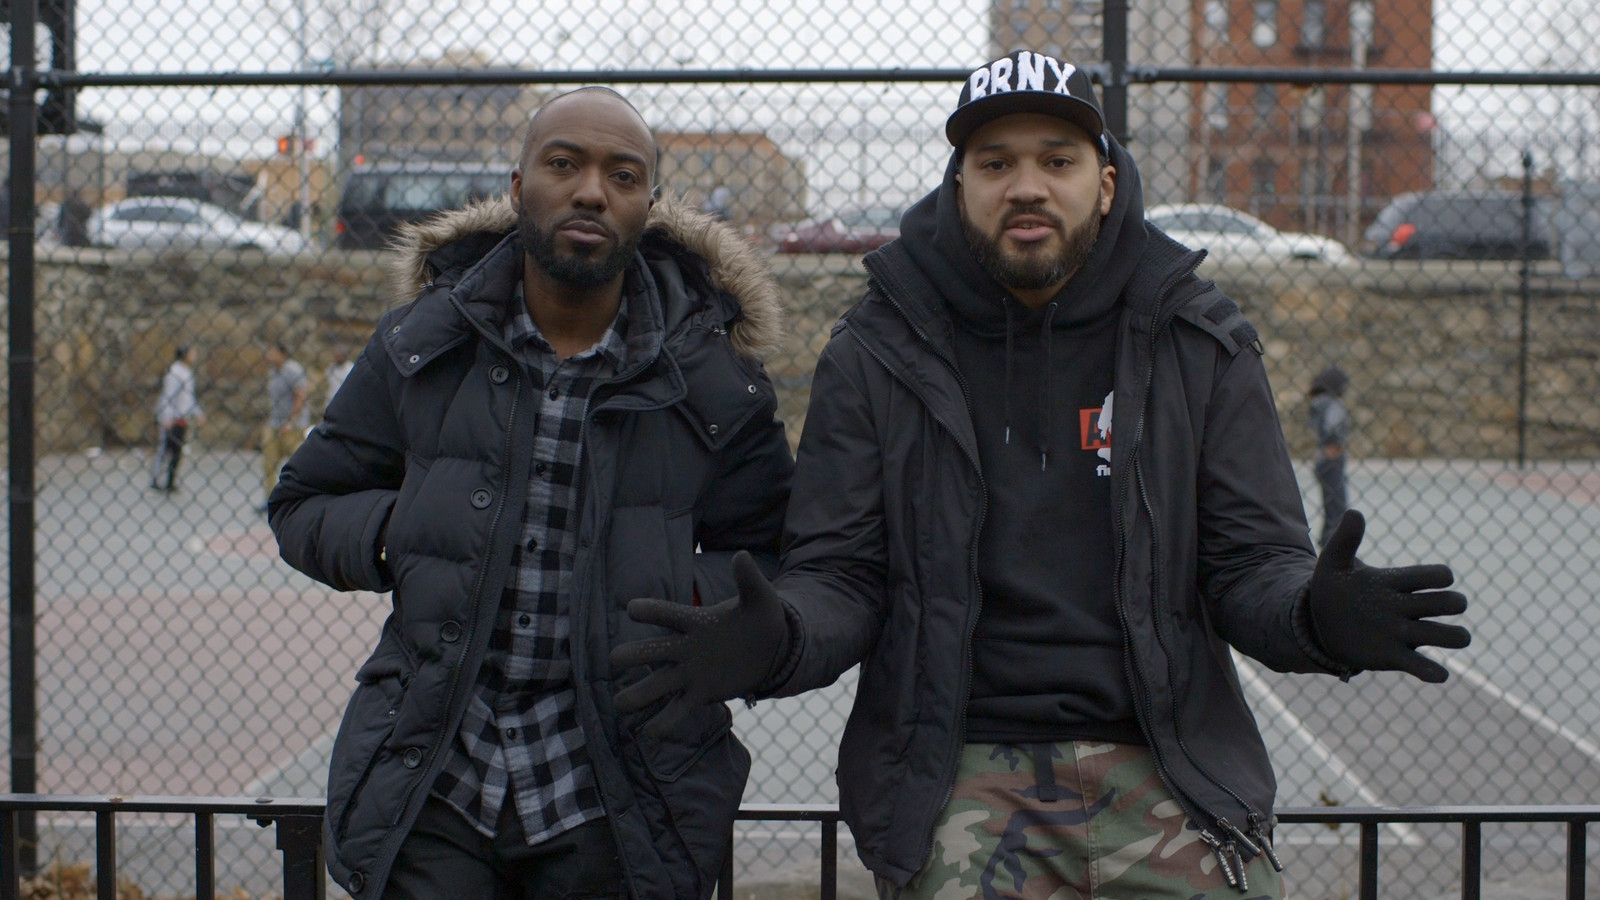 desus nice and the kid mero curbed